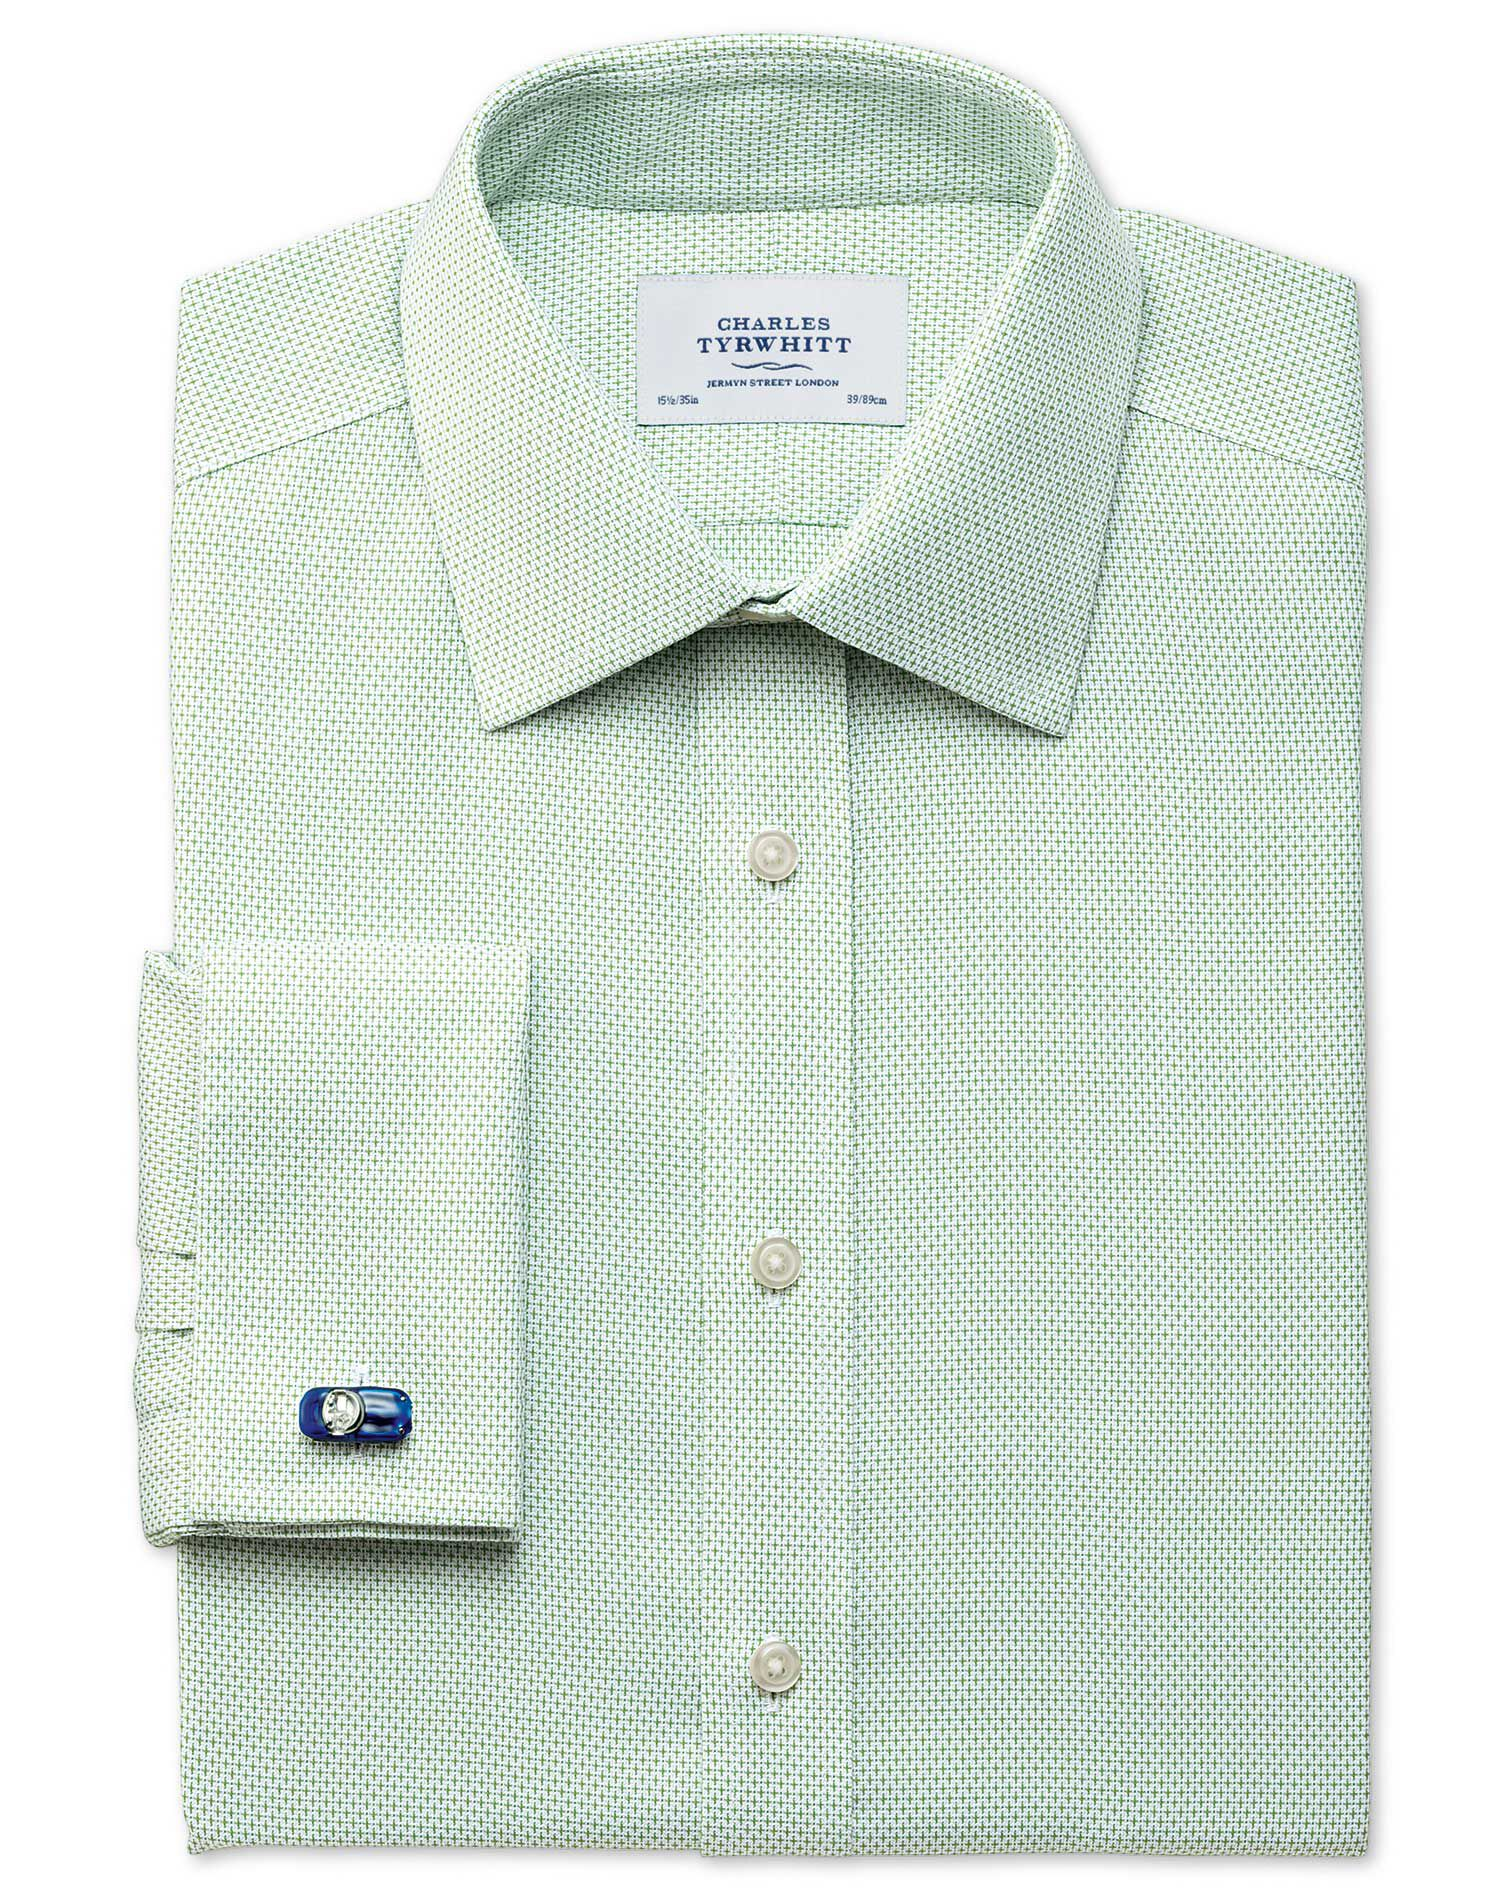 Classic Fit Non-Iron Imperial Weave Light Green Cotton Formal Shirt Double Cuff Size 16/35 by Charle